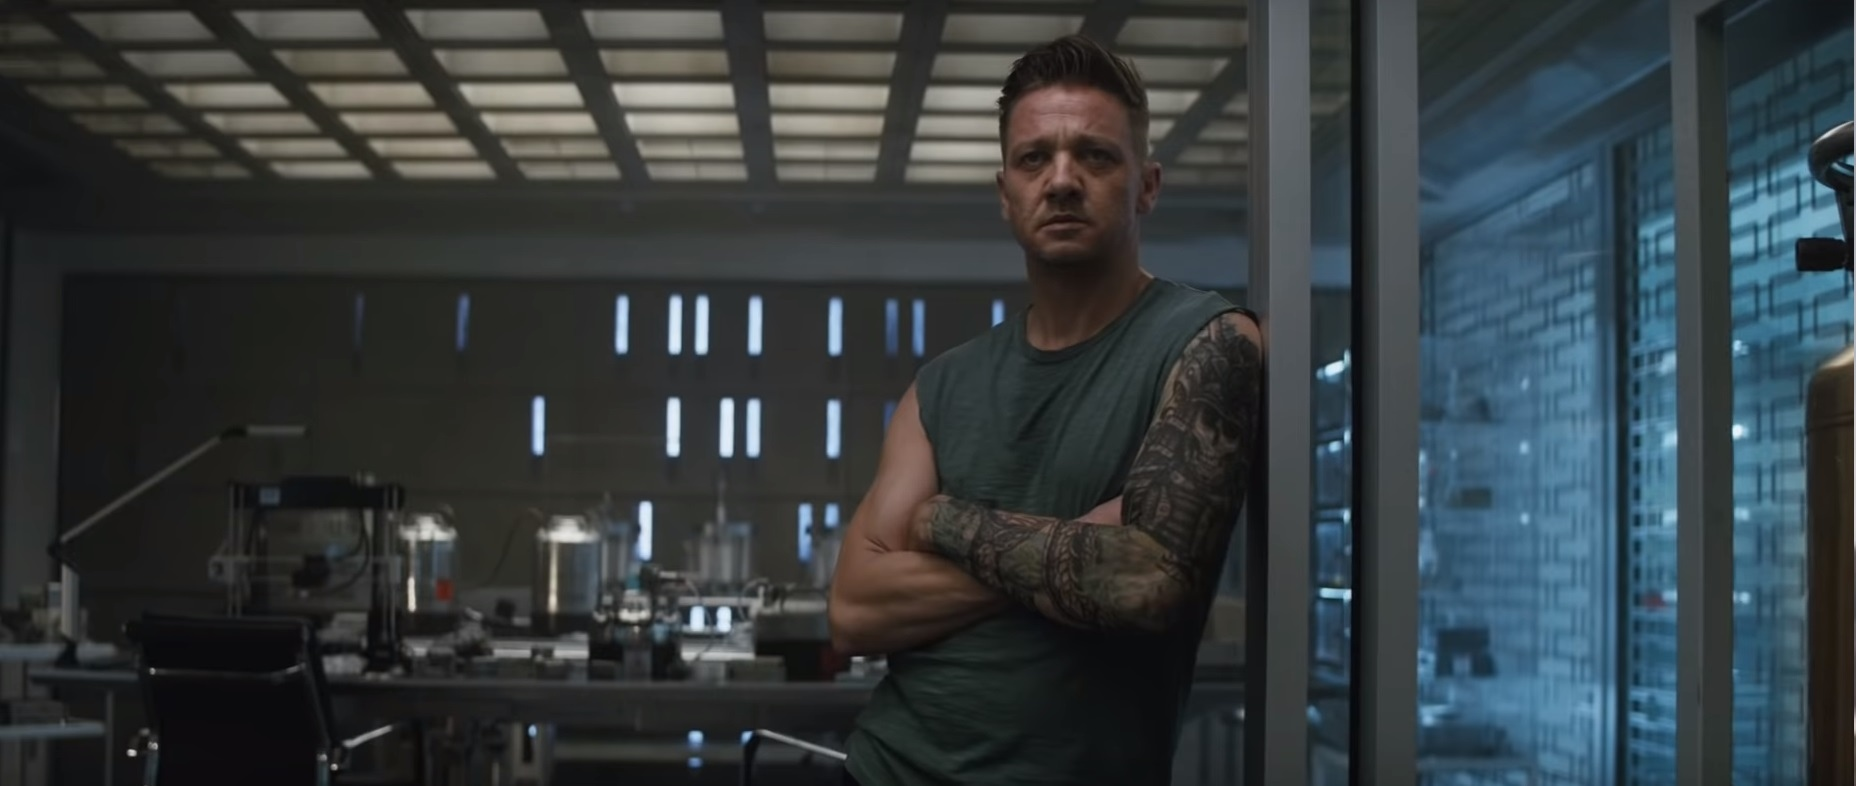 Avengers: Endgame Trailer Breakdown | Hawkeye